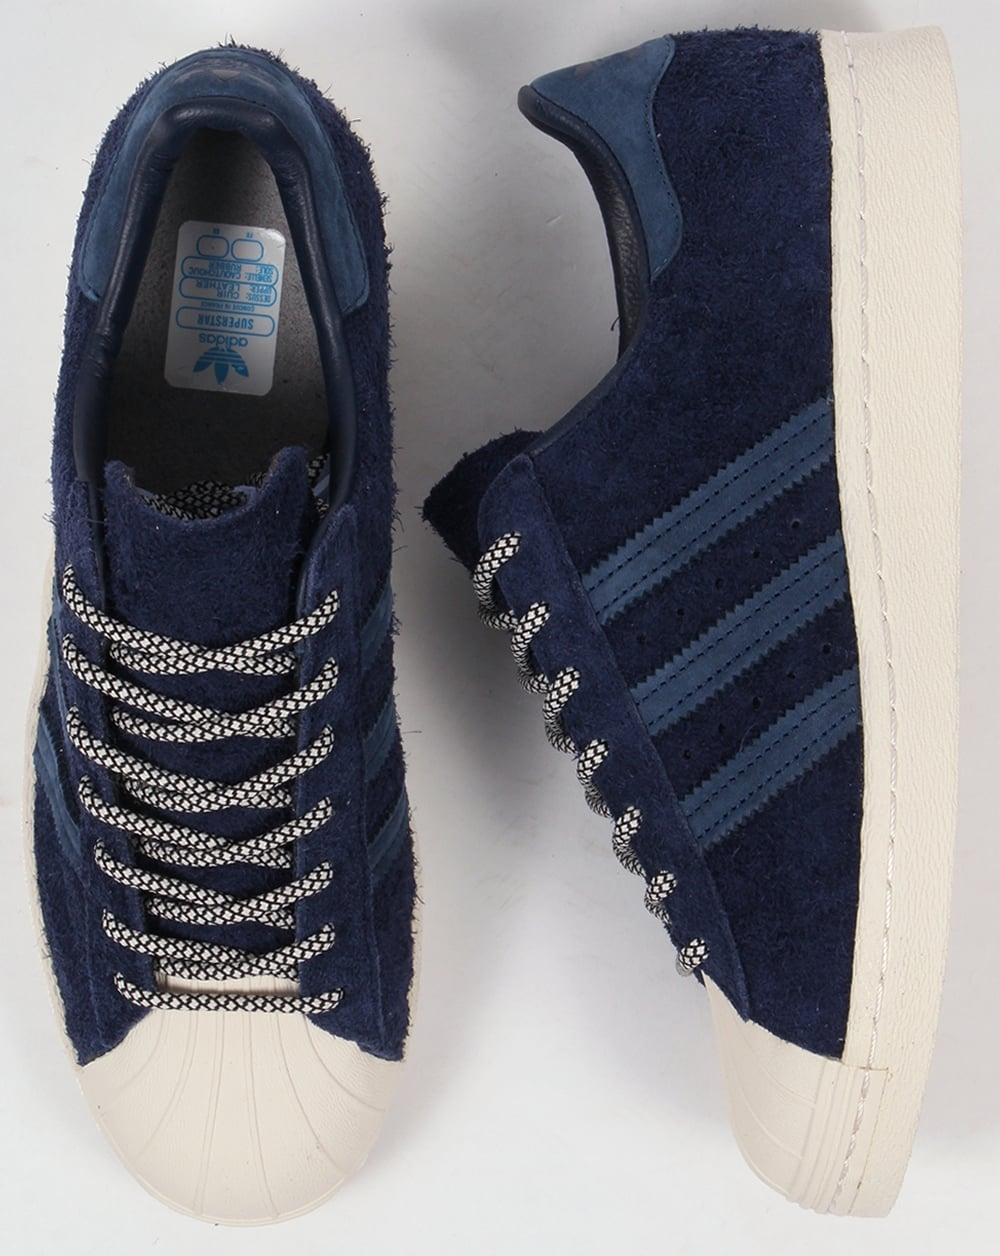 official photos c12d2 78f37 Adidas Superstar 80s Trainers Navy/Mineral Blue/White